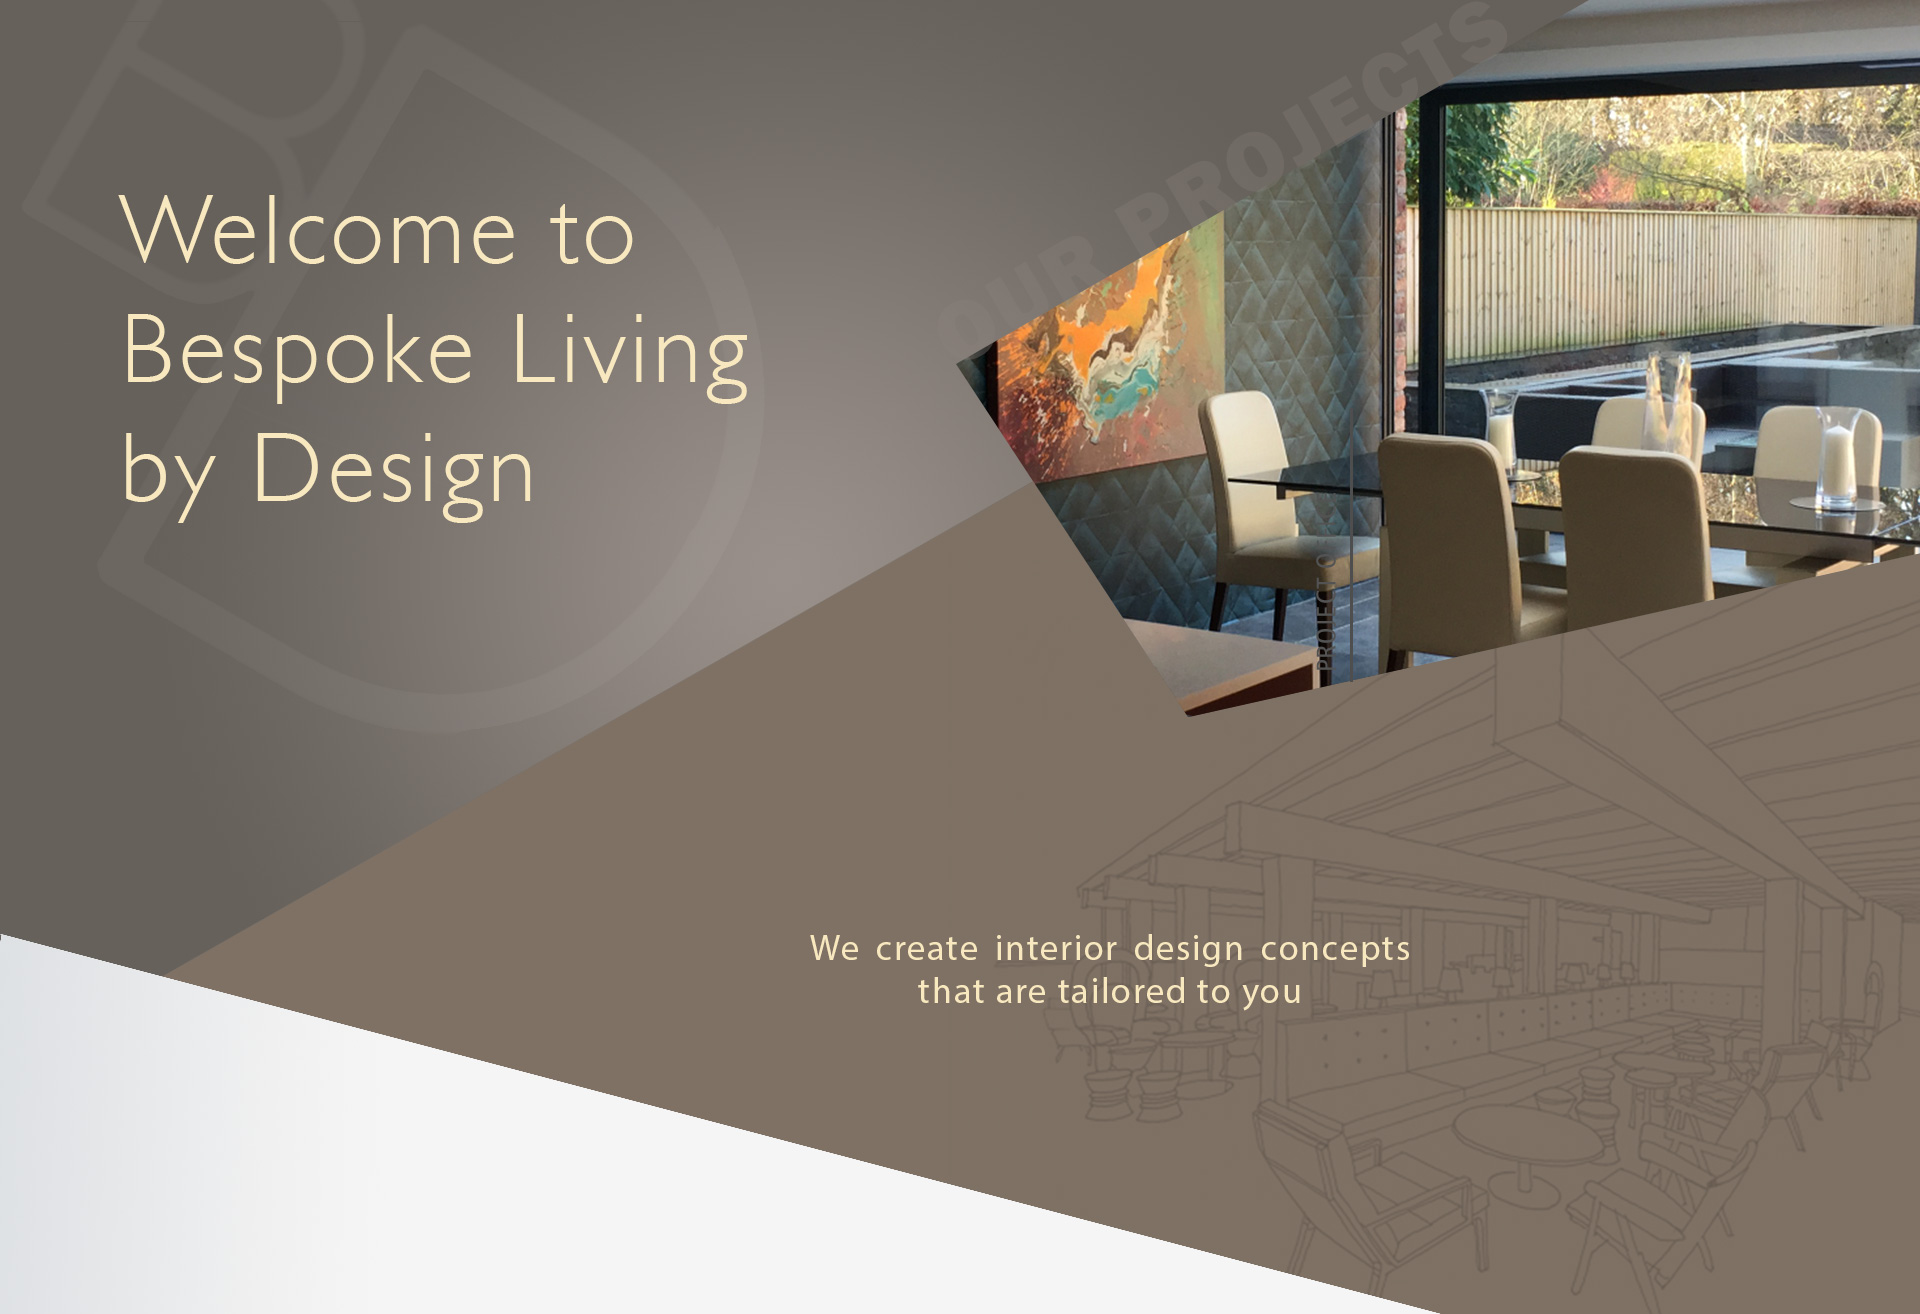 Interior design consultant bespoke interior design for Interior design consultant company